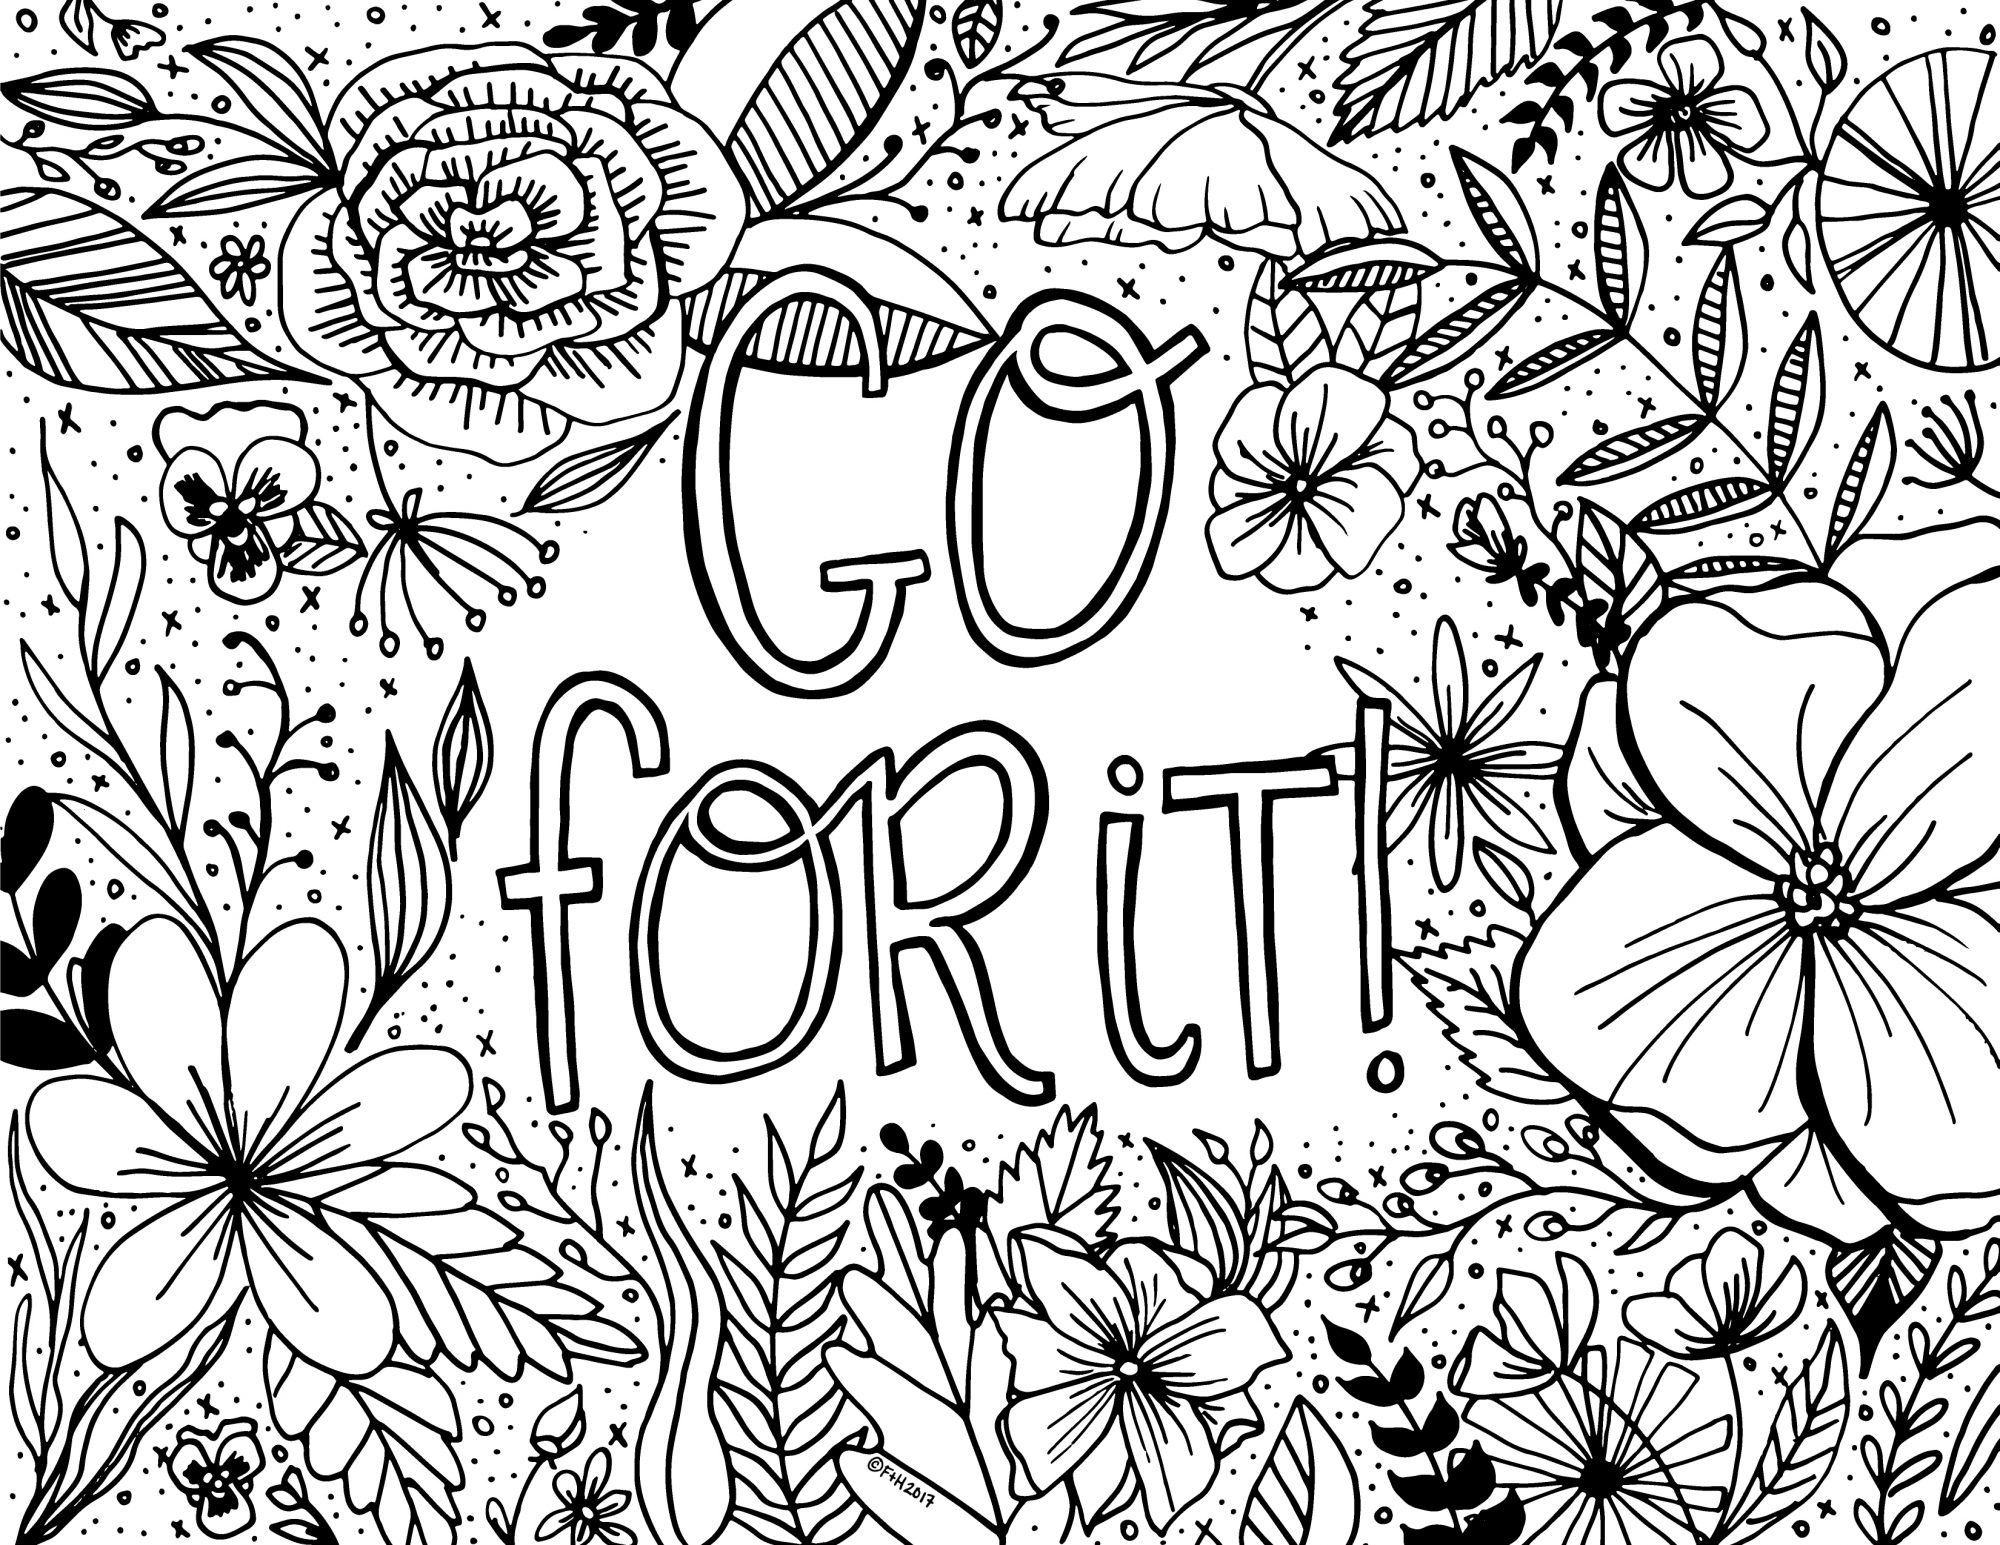 Printable Design Coloring Pages At Getdrawings Free